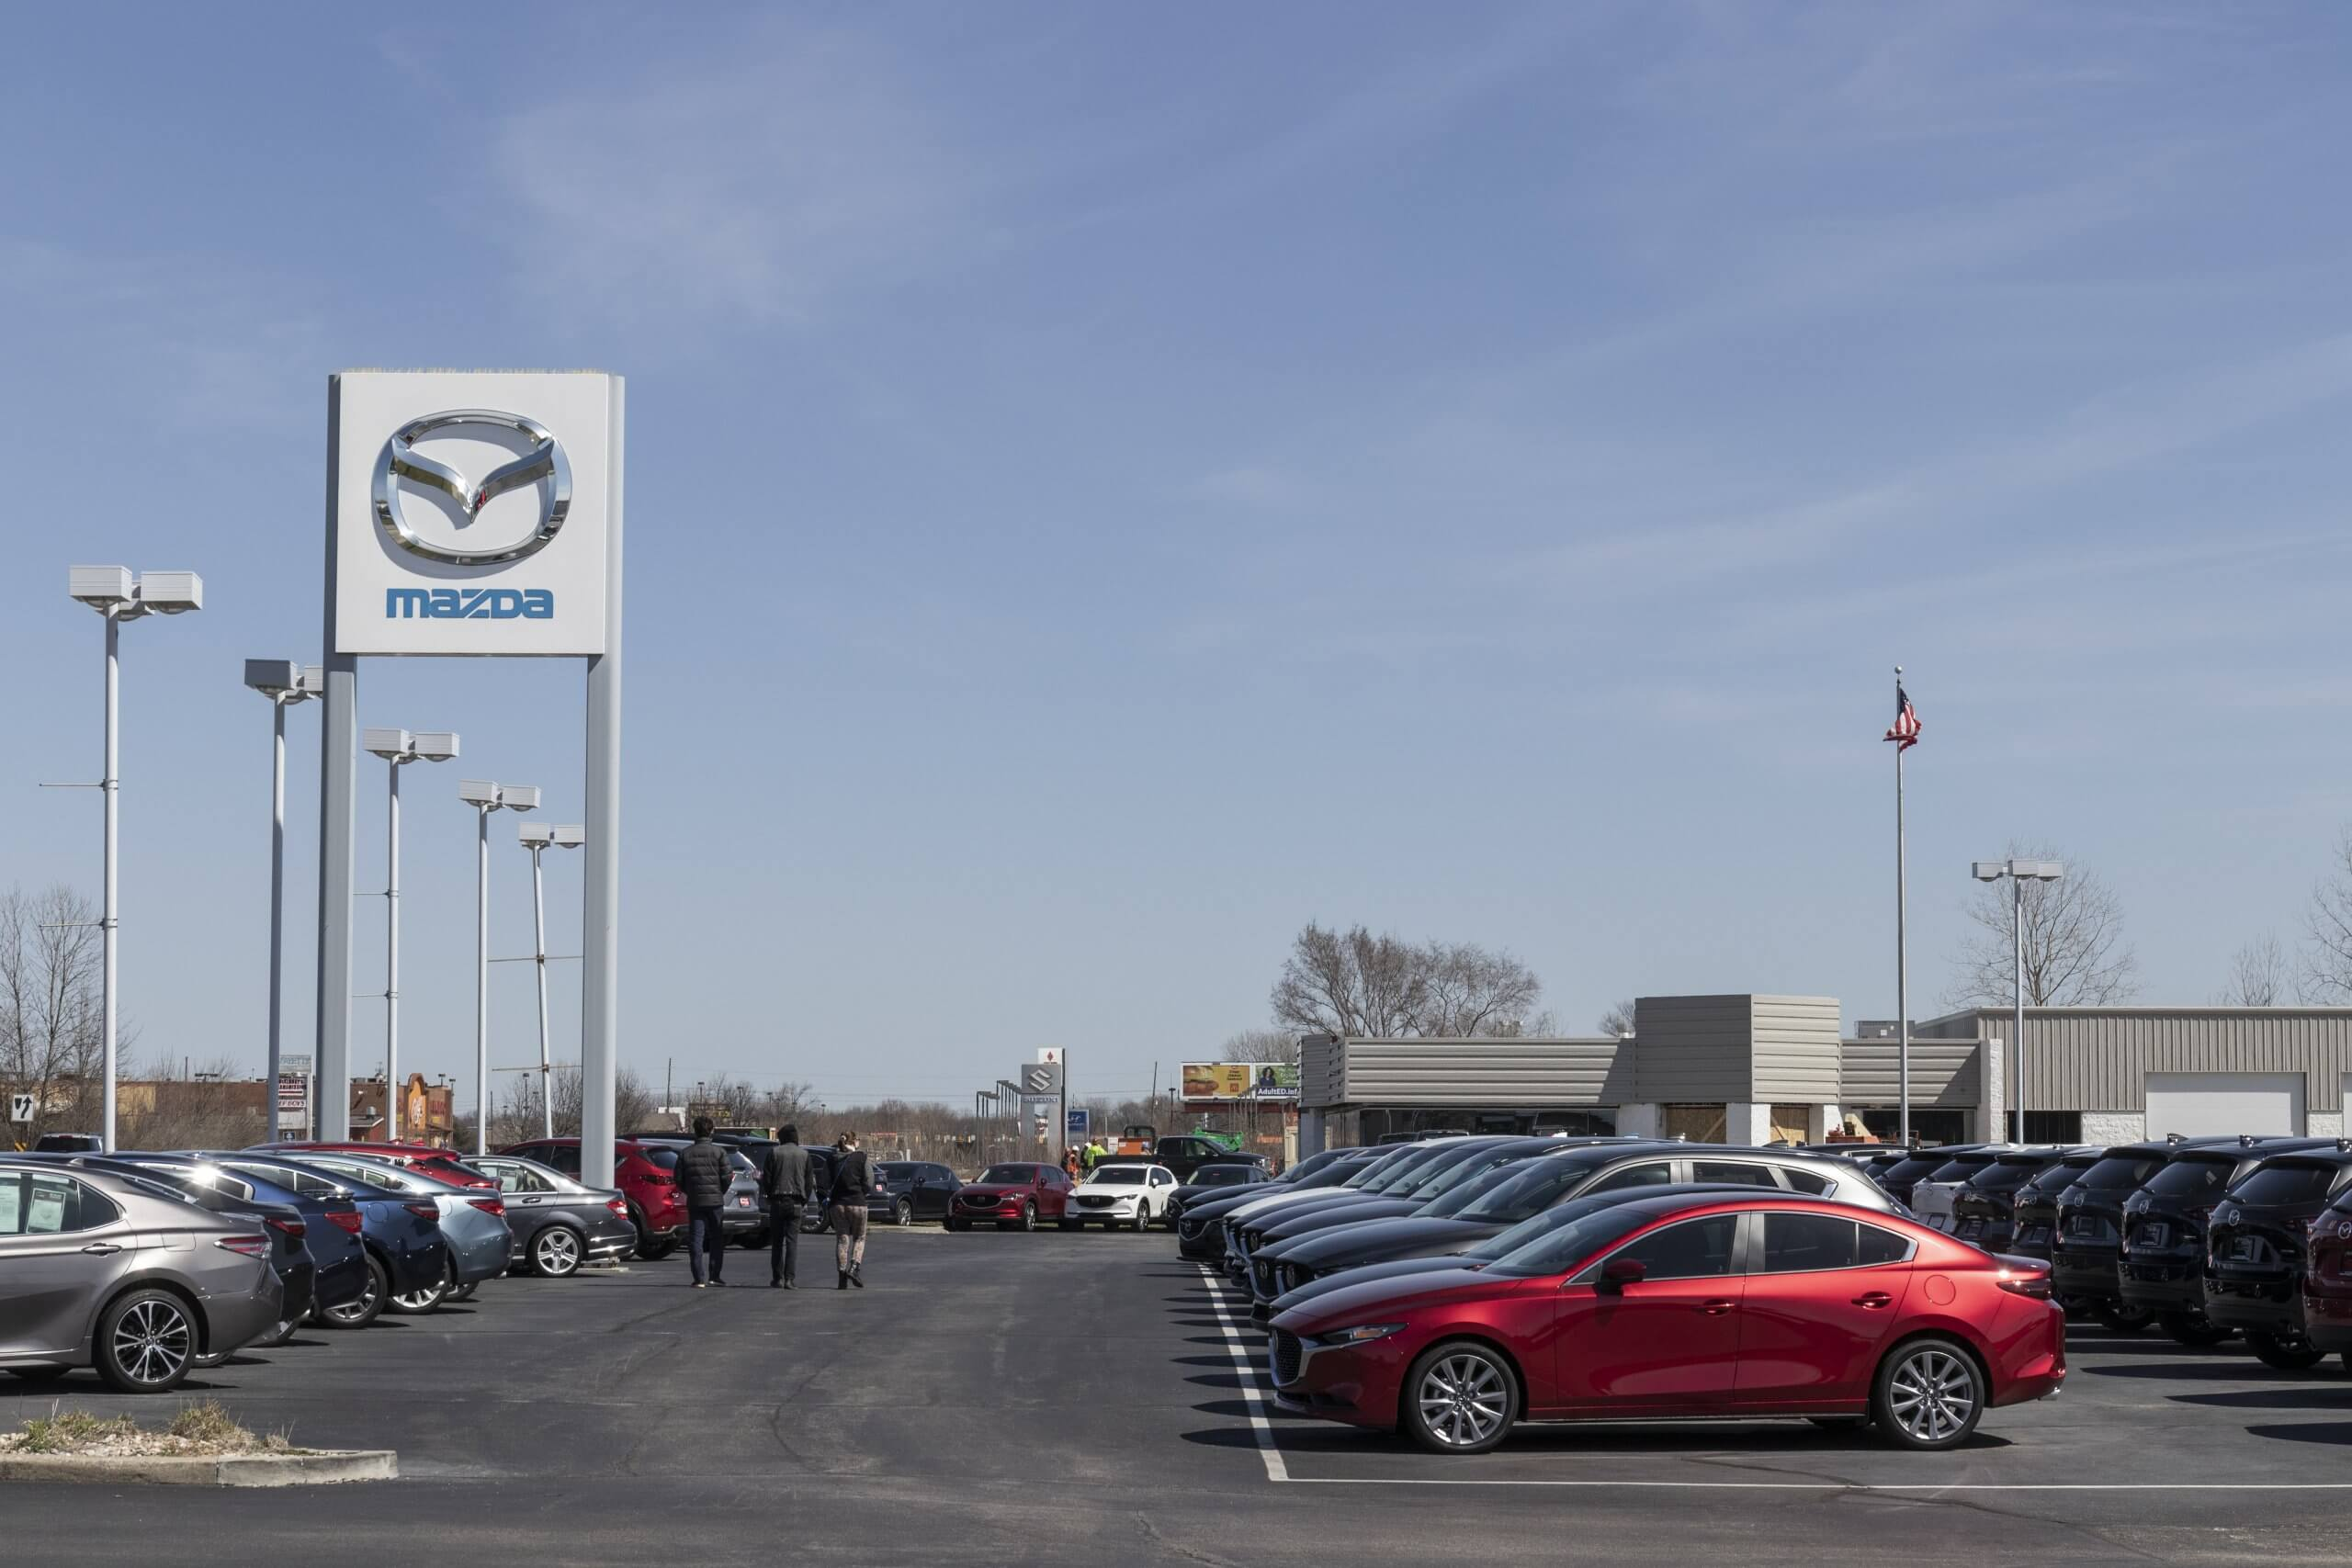 Mazda franchise dealership with rows of new Mazda cars parked in car park